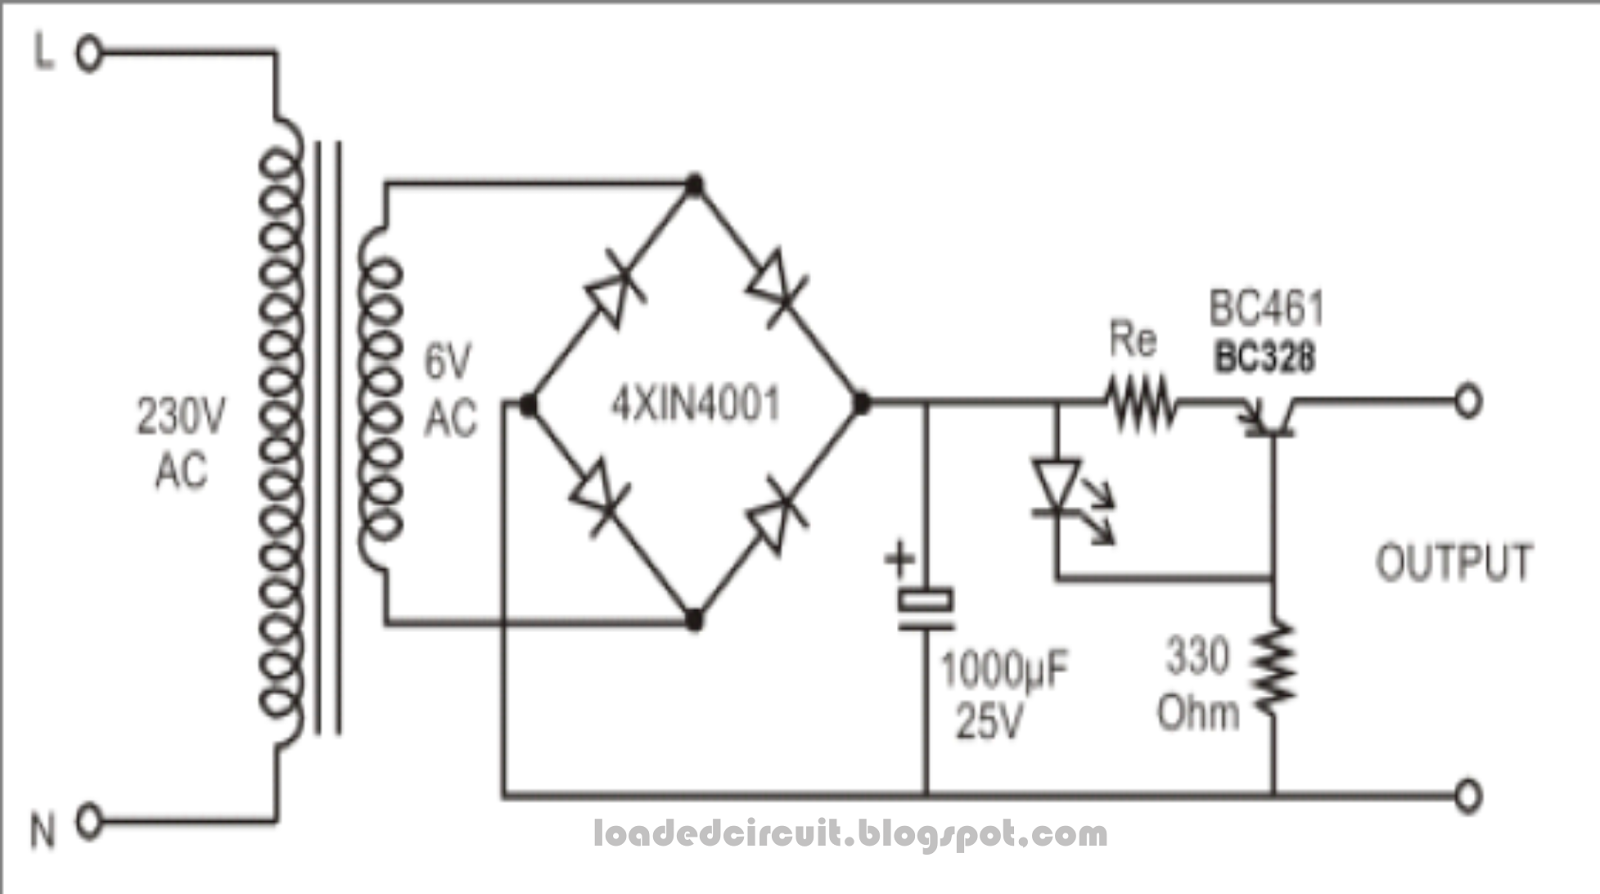 Circuit Diagram Current Source Free Wiring For You Constant Schematic Loadedcircuit Com Pnp Components